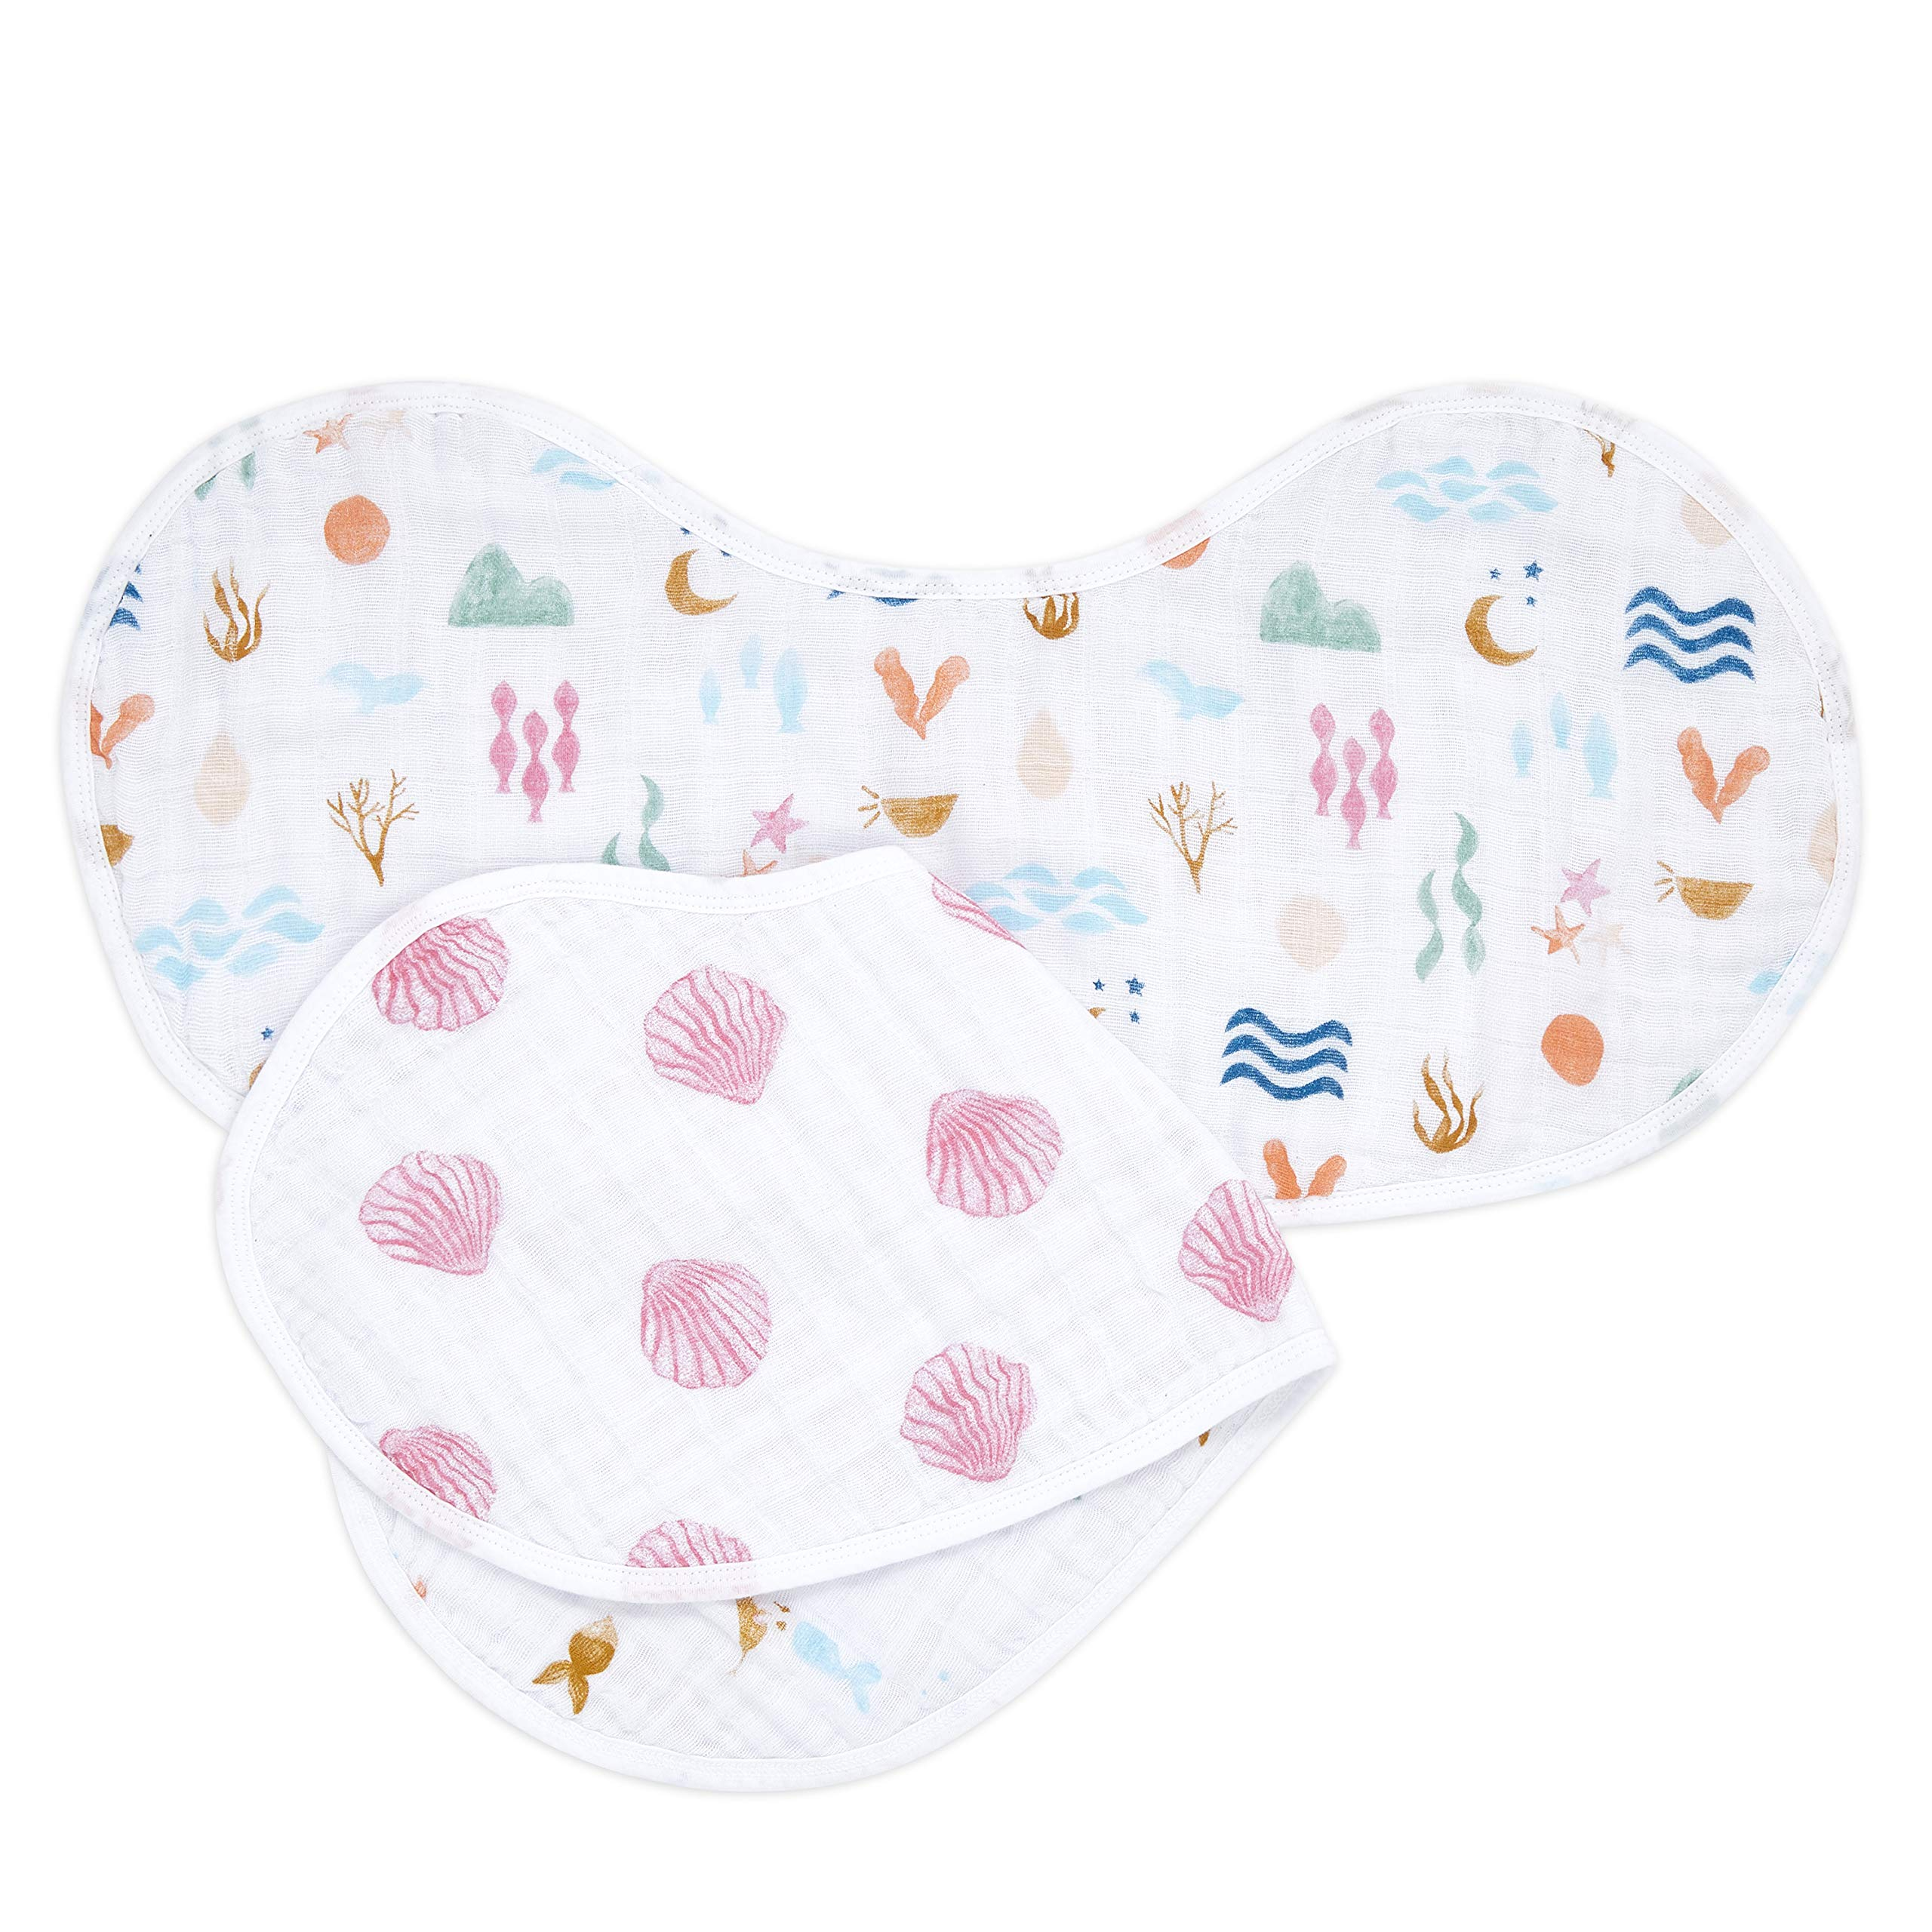 aden + anais Burpy Baby Bib, 100% Cotton Muslin, 4 Layer Multi Use Burping Cloth, Super Soft & Absorbent Burp Rag for Infants, Newborns and Toddlers, 2 Pack, Salty Kisses